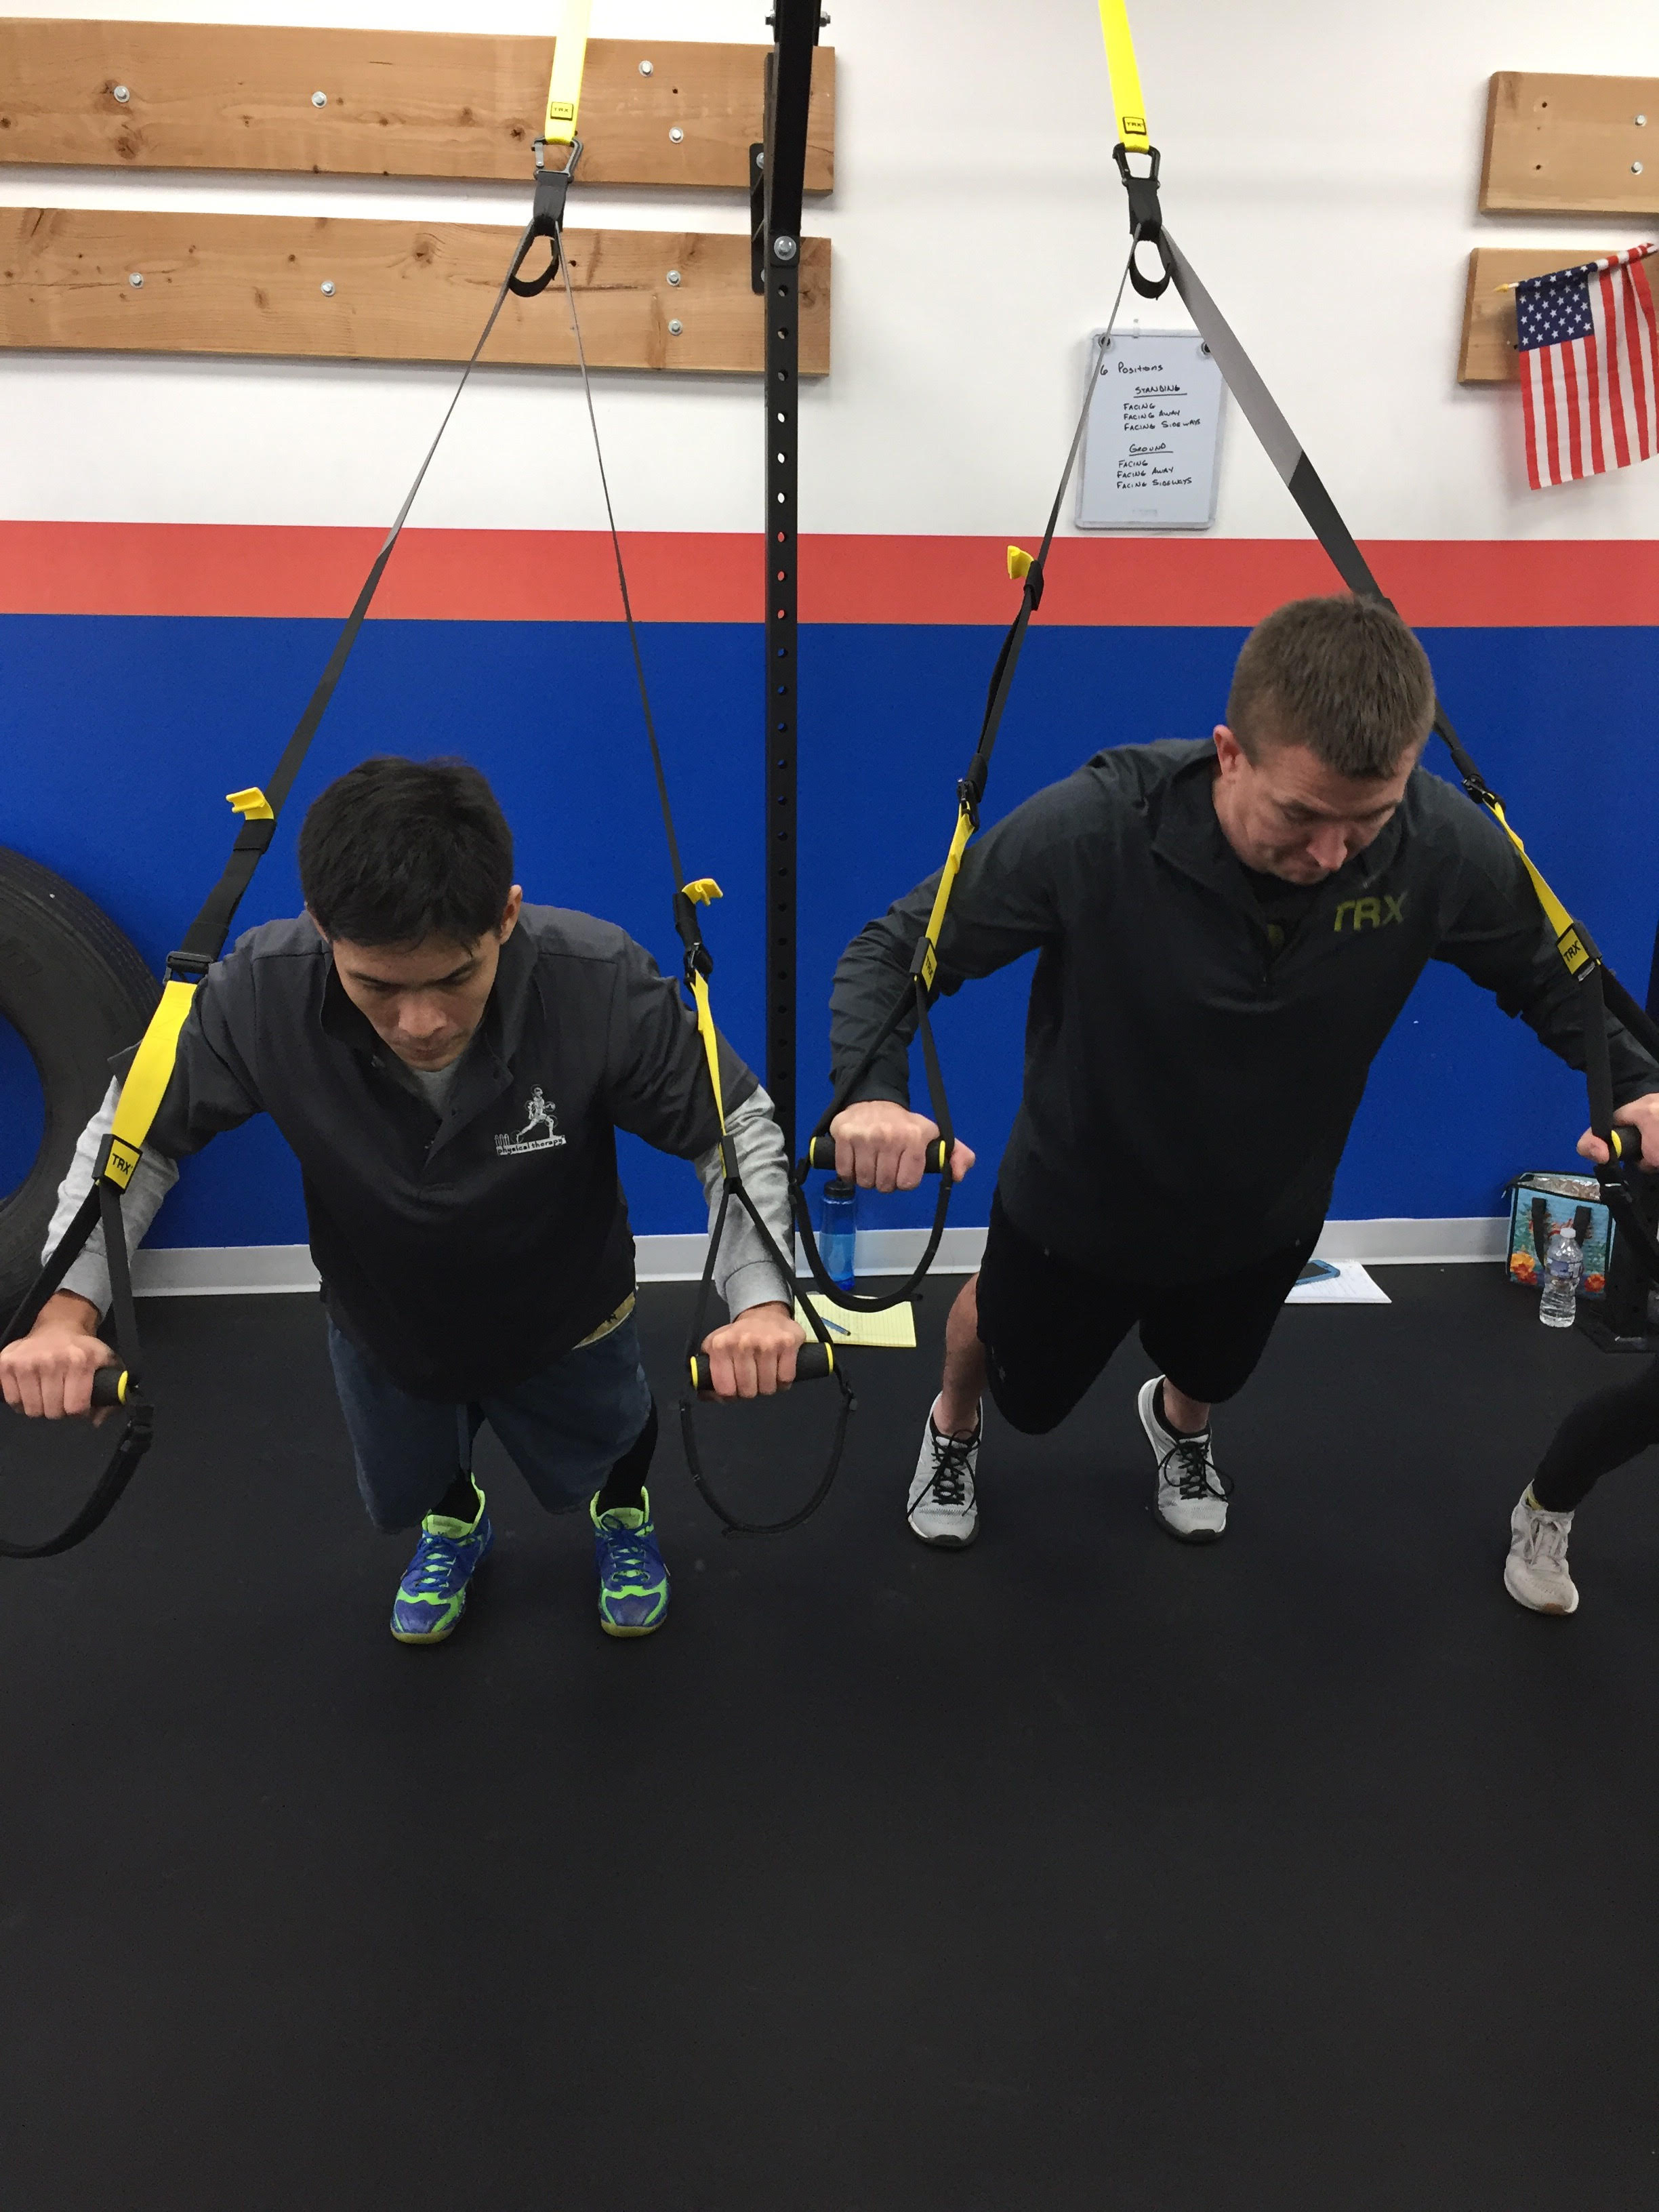 Push Up Plank TRX personal training functional movement Columbia Howard County MD.jpg